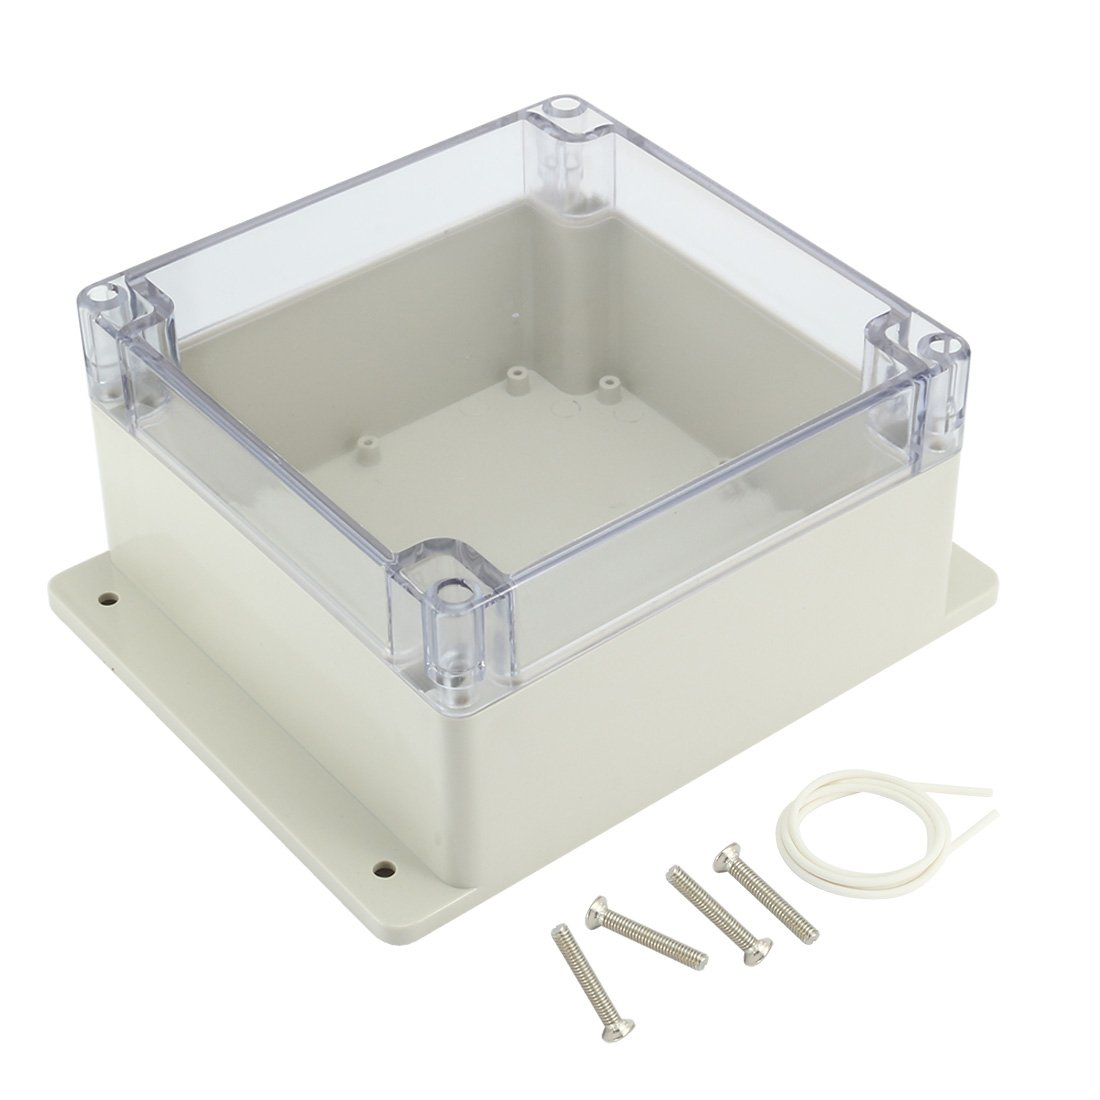 uxcell 6.3''x6.3''x3.54''(160mmx160mmx90mm) ABS Junction Box Universal Project Enclosure w PC Transparent Cover